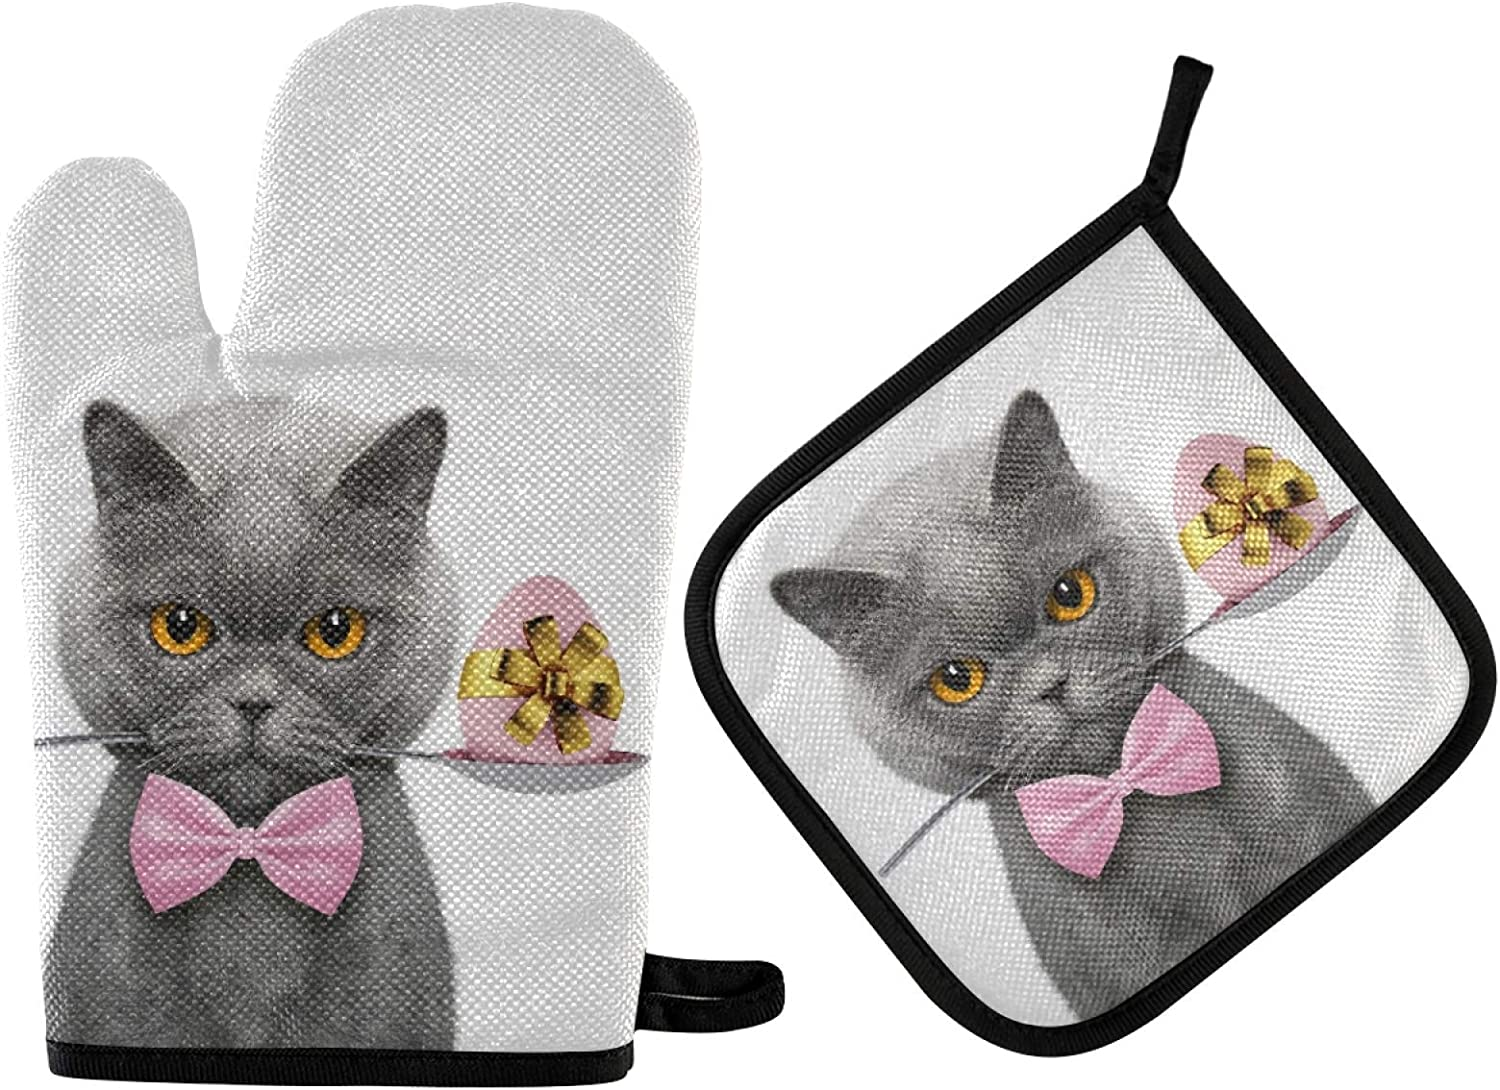 Funny Cat with Spoon Oven Gloves and Potholder , Heat-Resistant Oven Gloves, for Grilling, Cooking, Baking, Kitchen(2 Piece Set)